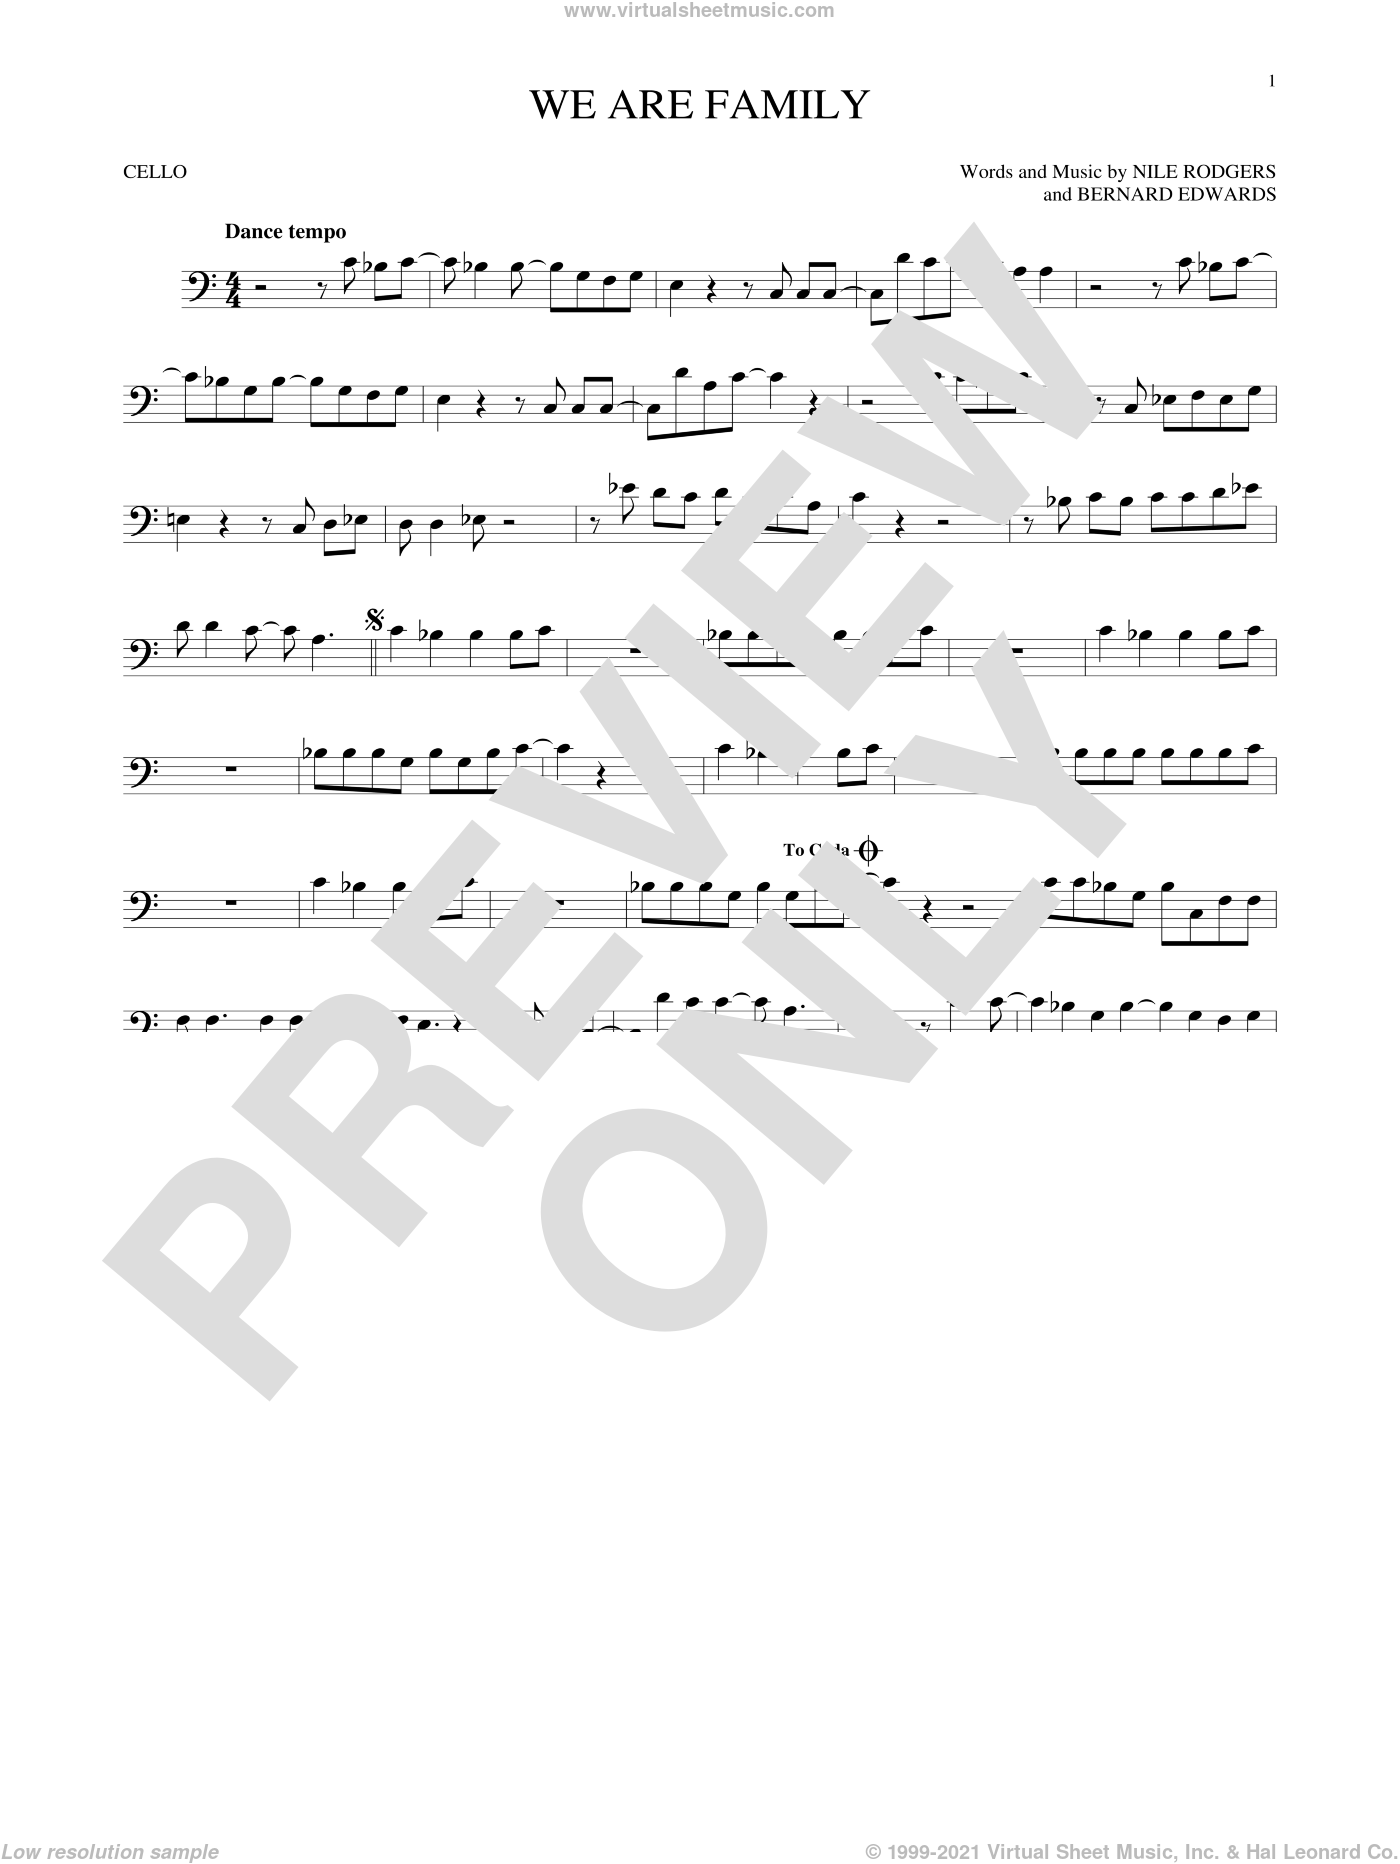 We Are Family sheet music for cello solo by Nile Rodgers, Sister Sledge and Bernard Edwards. Score Image Preview.